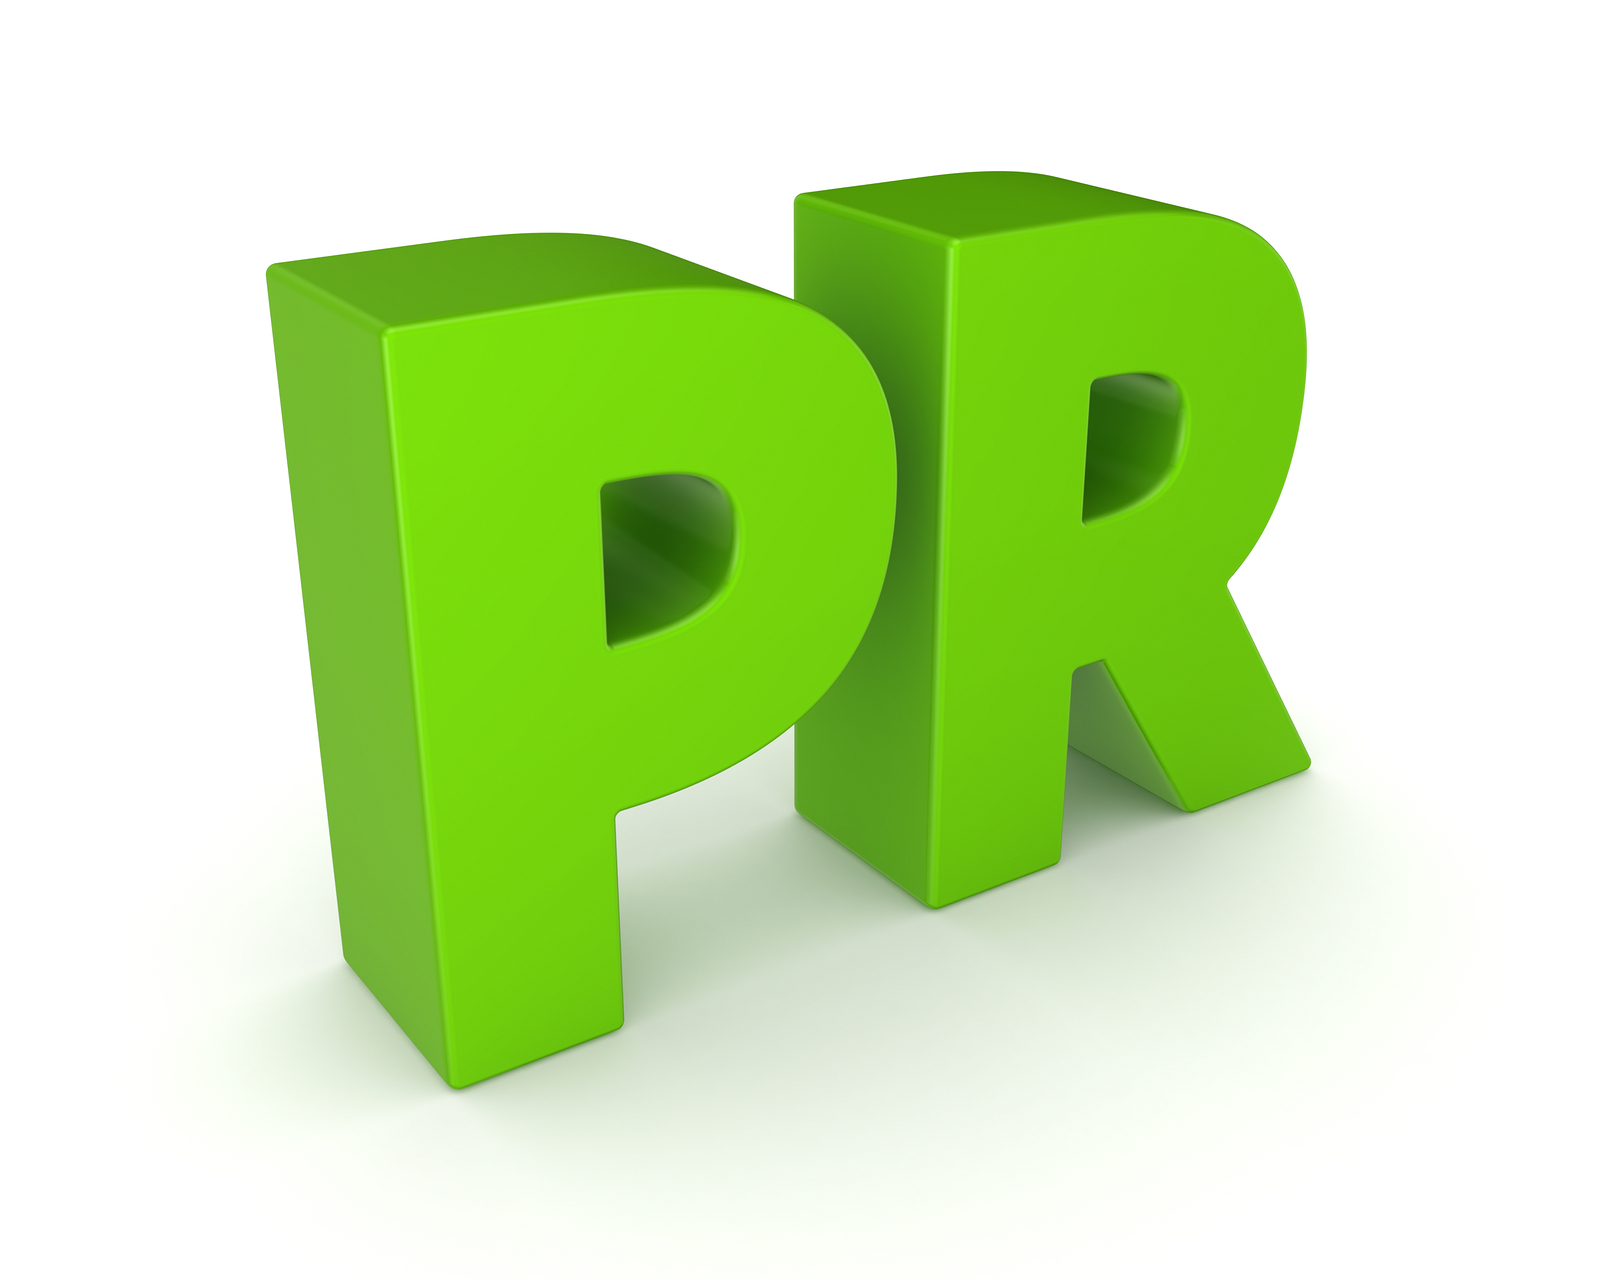 list of pr agencies in india, list of top advertising agencies in india, list of advertising agencies in delhi, top pr firms in india, top advertising agencies in delhi ncr, top advertising companies in india, leading advertising agencies in india, top ad agencies in delhi, best advertising companies in india, top advertising agencies india, top pr agencies in india, top ten advertising agencies in india, event management agency, best pr companies in india, Best advertising agencies, INS accredited advertising, Advertising agencies in Gurgaon, Creative marketing, How to Design a brand, Digital media services, Hoarding advertising services, BTL advertising, leading outdoor advertising, advertising company, newspaper ad, best advertising agency in Delhi, newspaper advertising agencies, business growth, Digital Marketing Consultancy, PR companies in India, reliable PR agencies, hire PR and media, leading PR agencies in Delhi NCR, Is PR effective for businesses